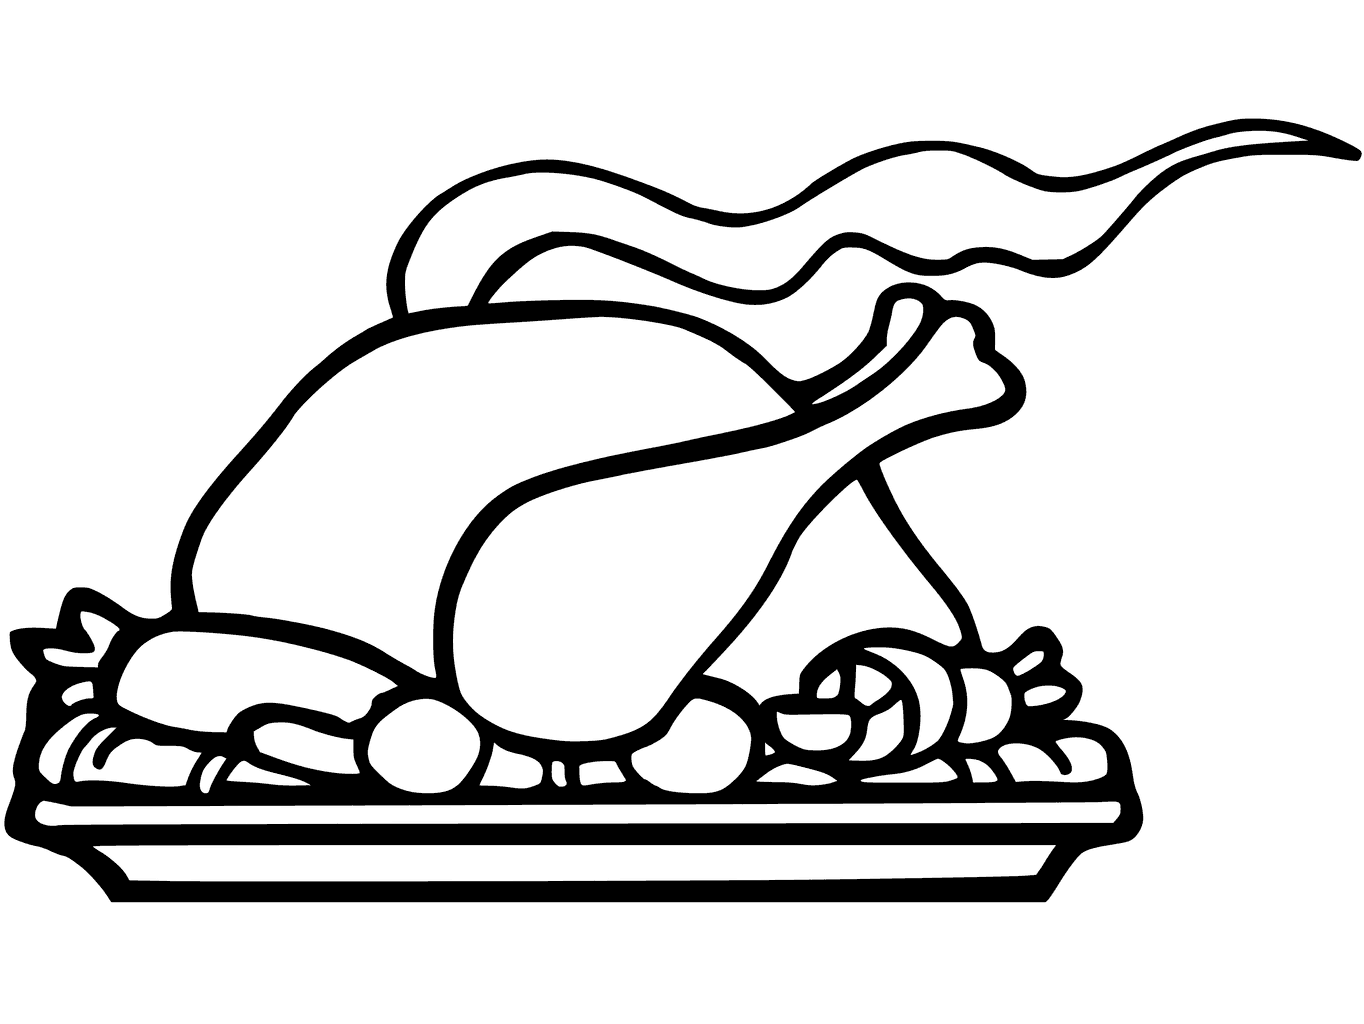 turkey drawing turkey dinner drawing at getdrawings free download drawing turkey